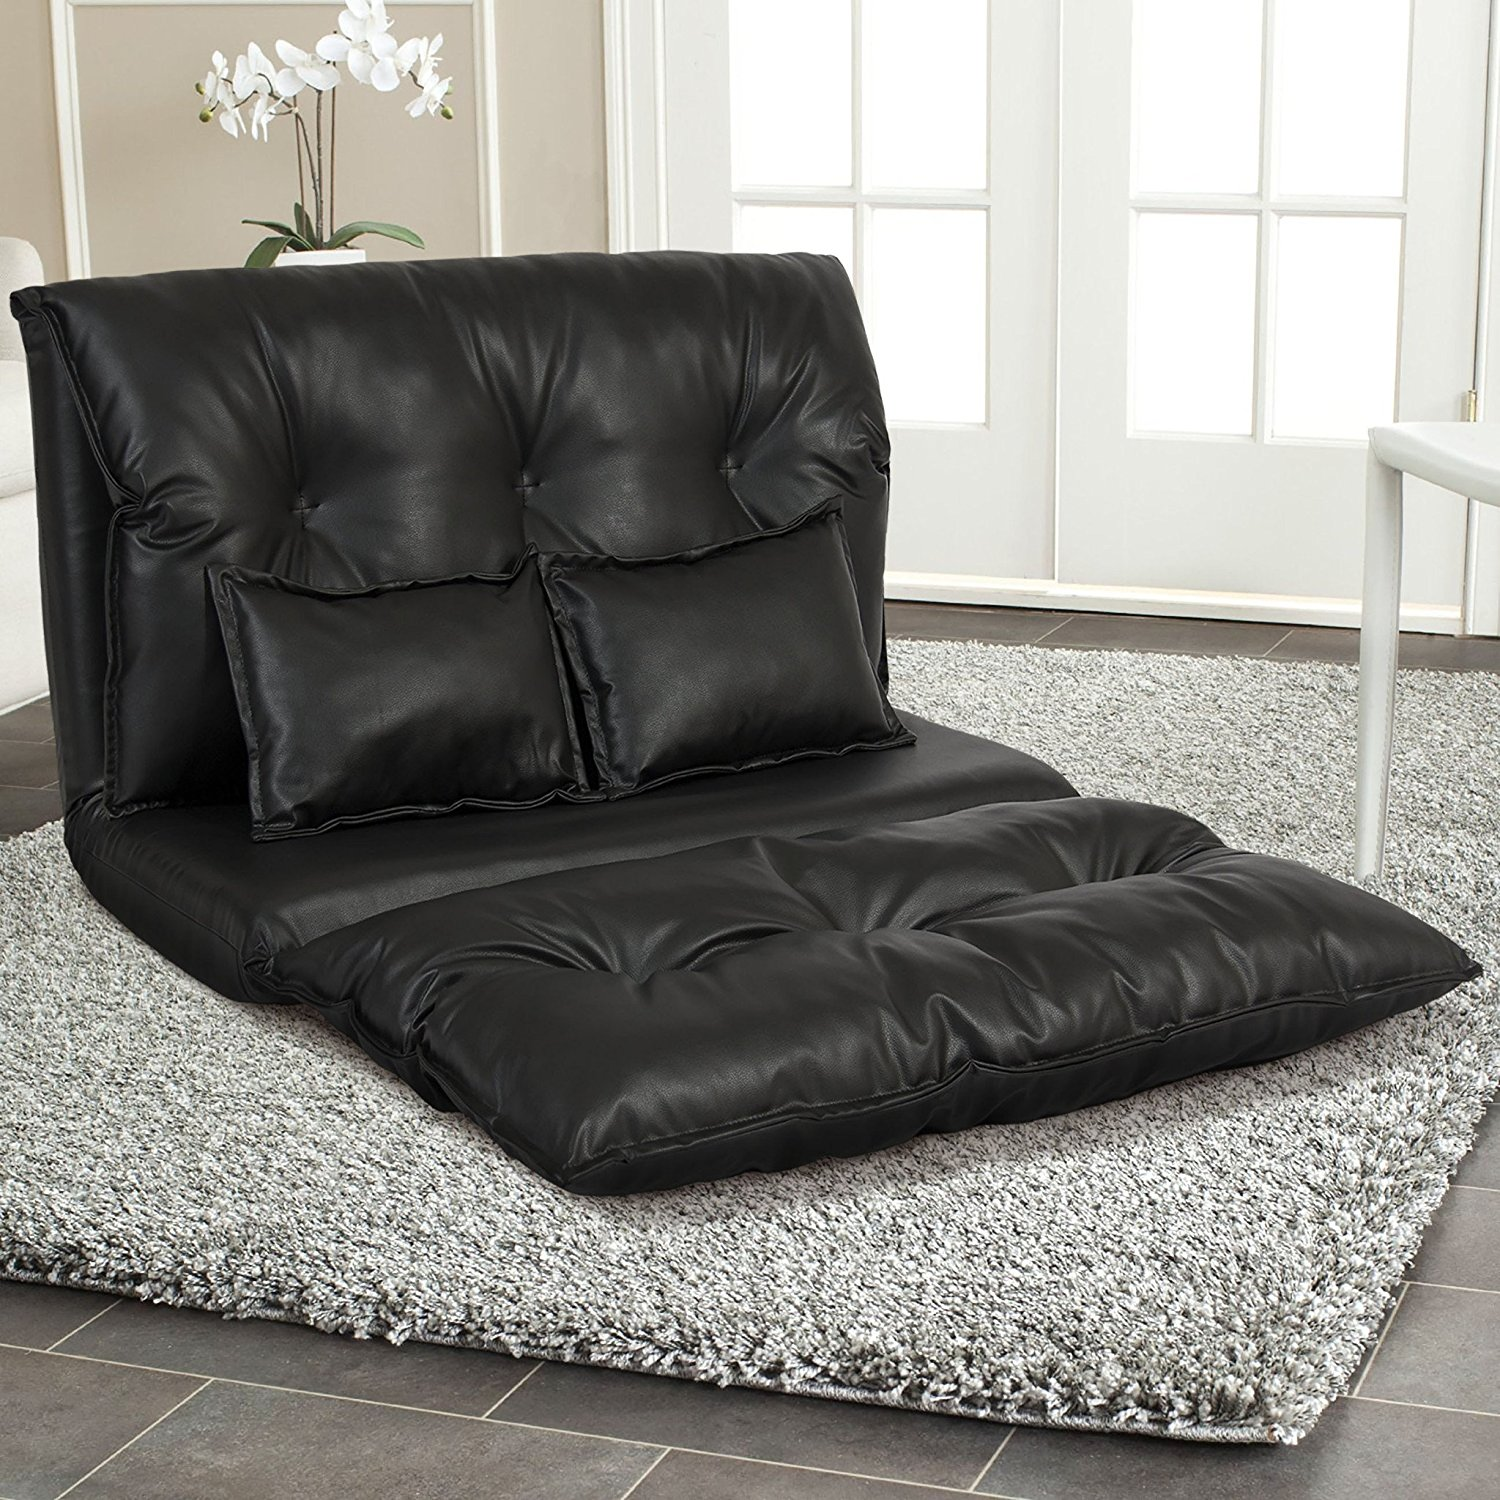 Get Quotations · PU Leather Foldable Modern Leisure Floor Sofa Bed Video  Gaming Sofa With Two Pillows, Black